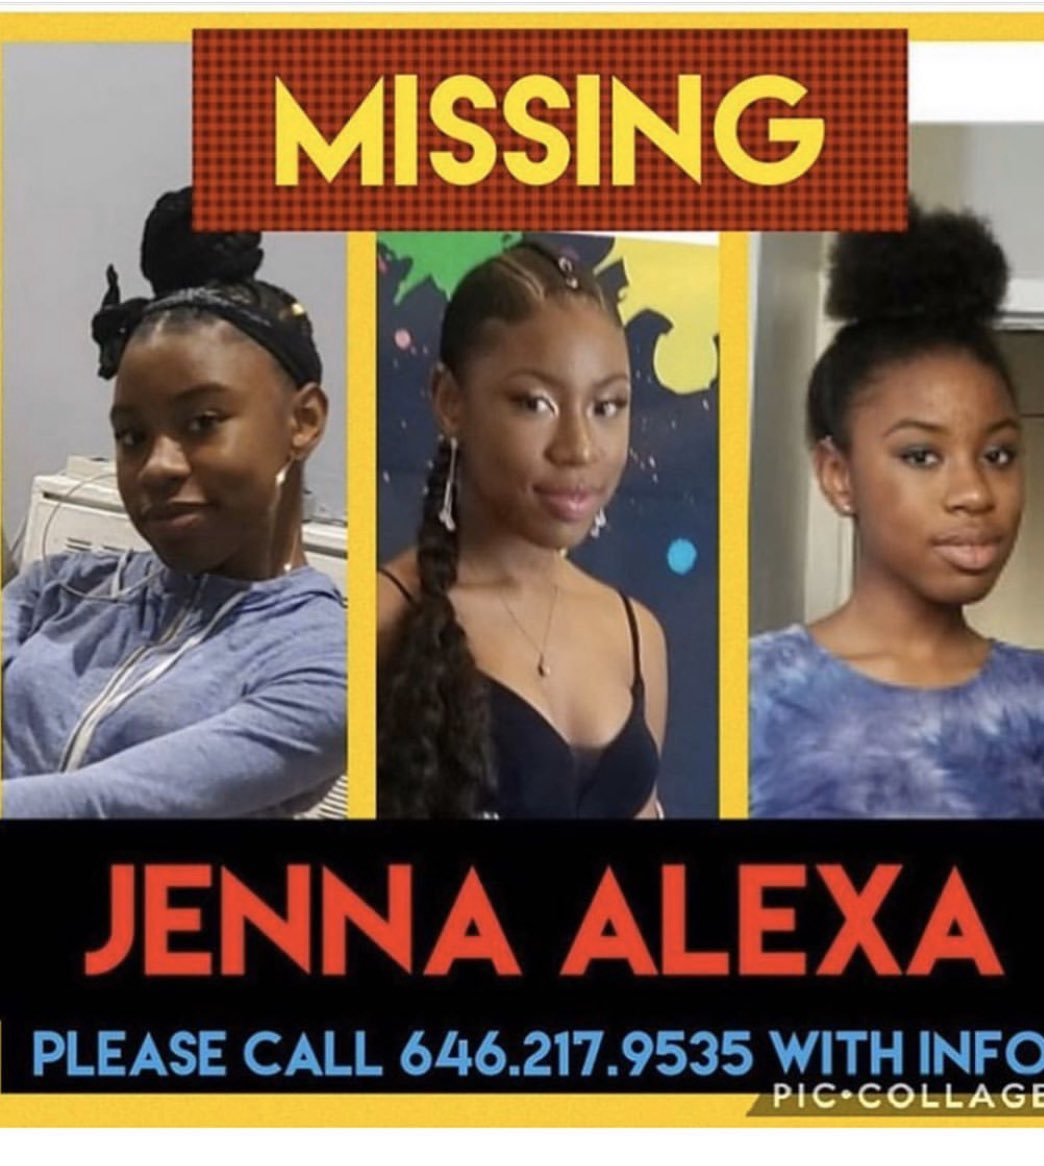 NEW YORKERS. please keep an eye out. jenna is only 14. 🙏🏻